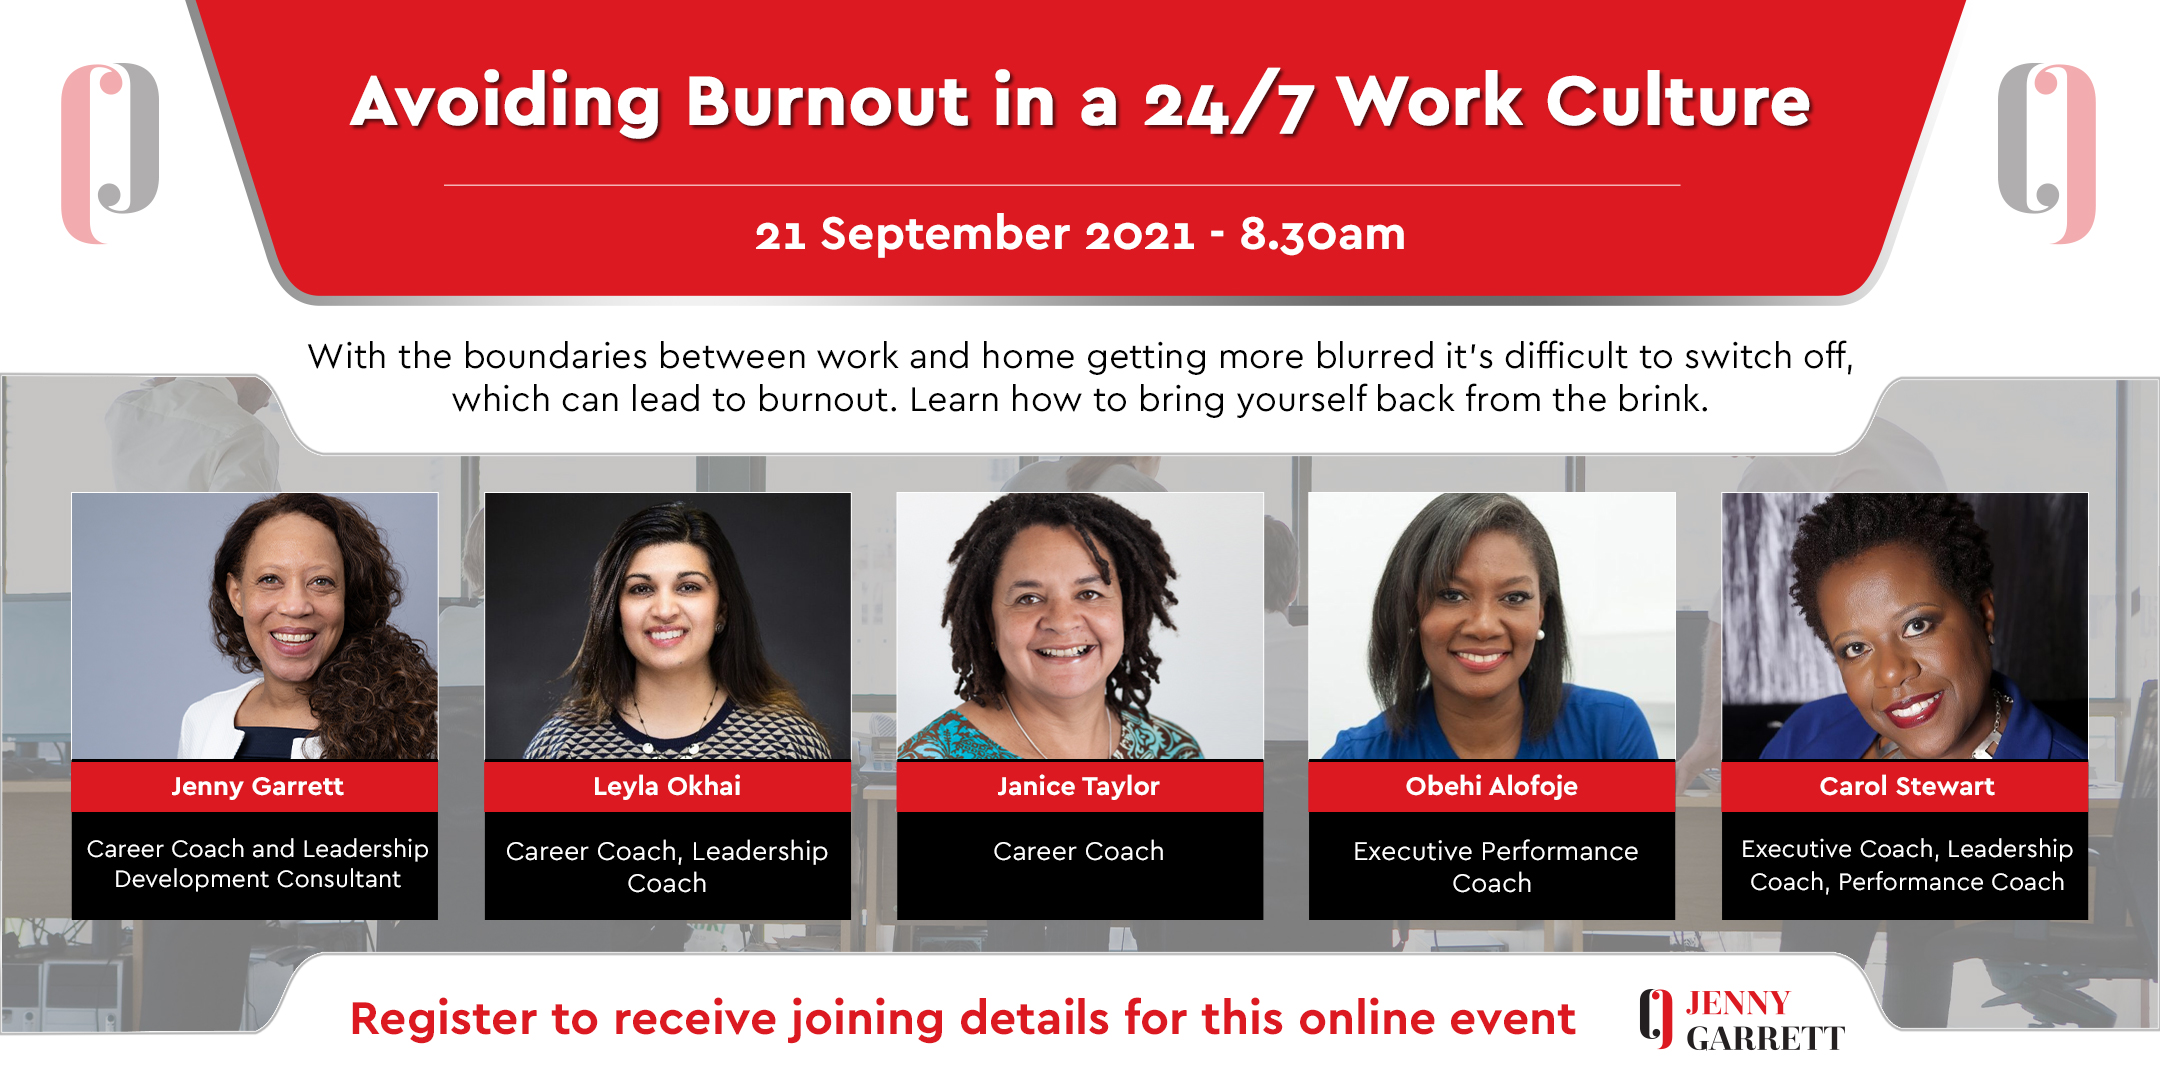 Avoiding Burnout in a 24/7 Work Culture